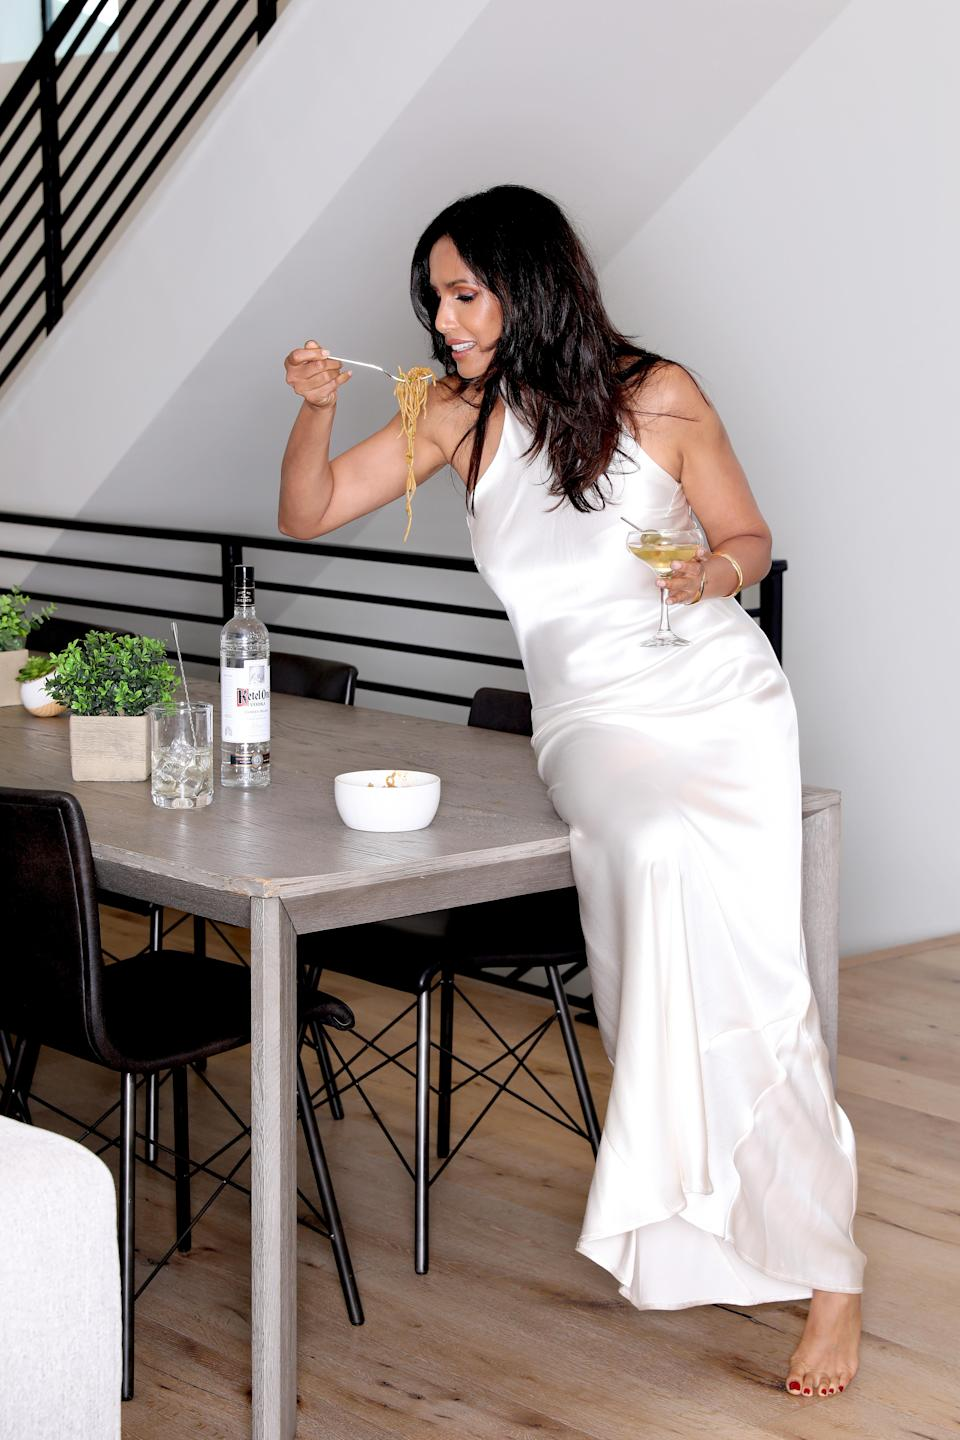 HOUSTON, TEXAS - SEPTEMBER 18: Padma Lakshmi prepares for the Emmys with a Ketel One Vodka martini in hand on September 18, 2021 in Houston, Texas. (Photo by Rick Kern/Getty Images for Ketel One Vodka)